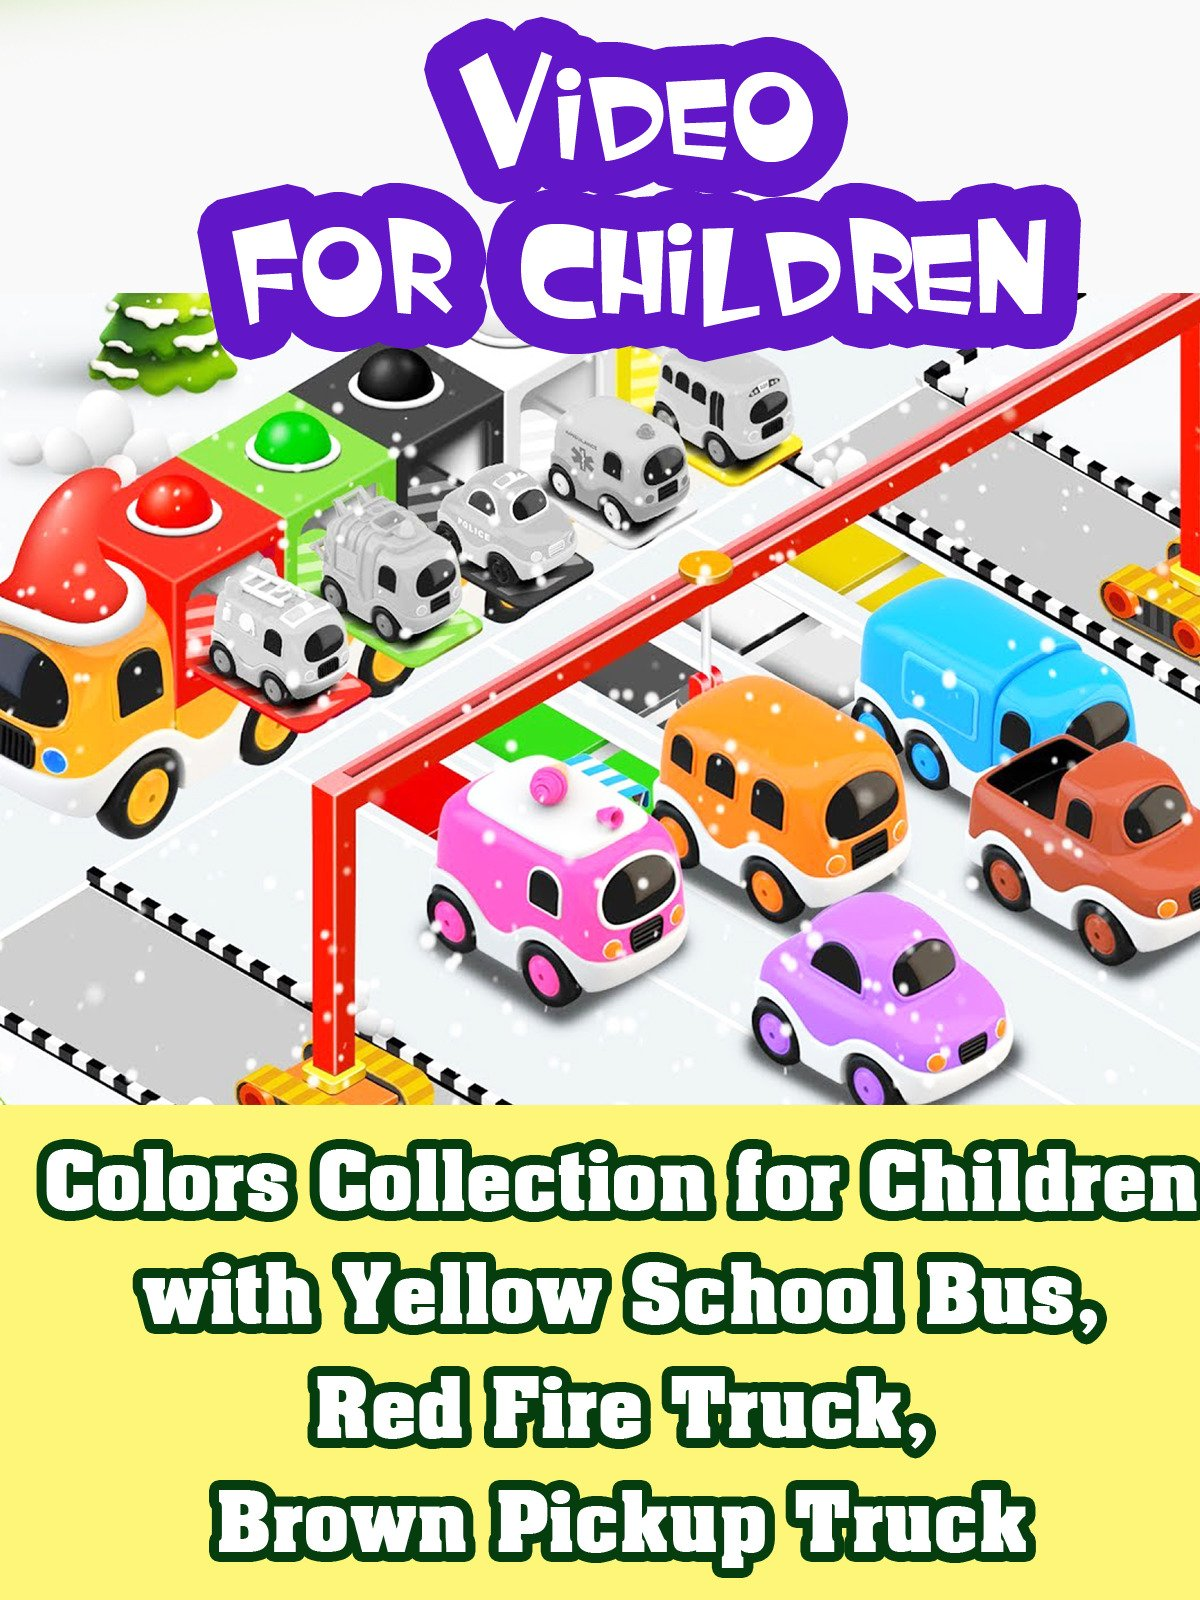 Colors Collection for Children with Yellow School Bus, Red Fire Truck, Brown Pickup Truck